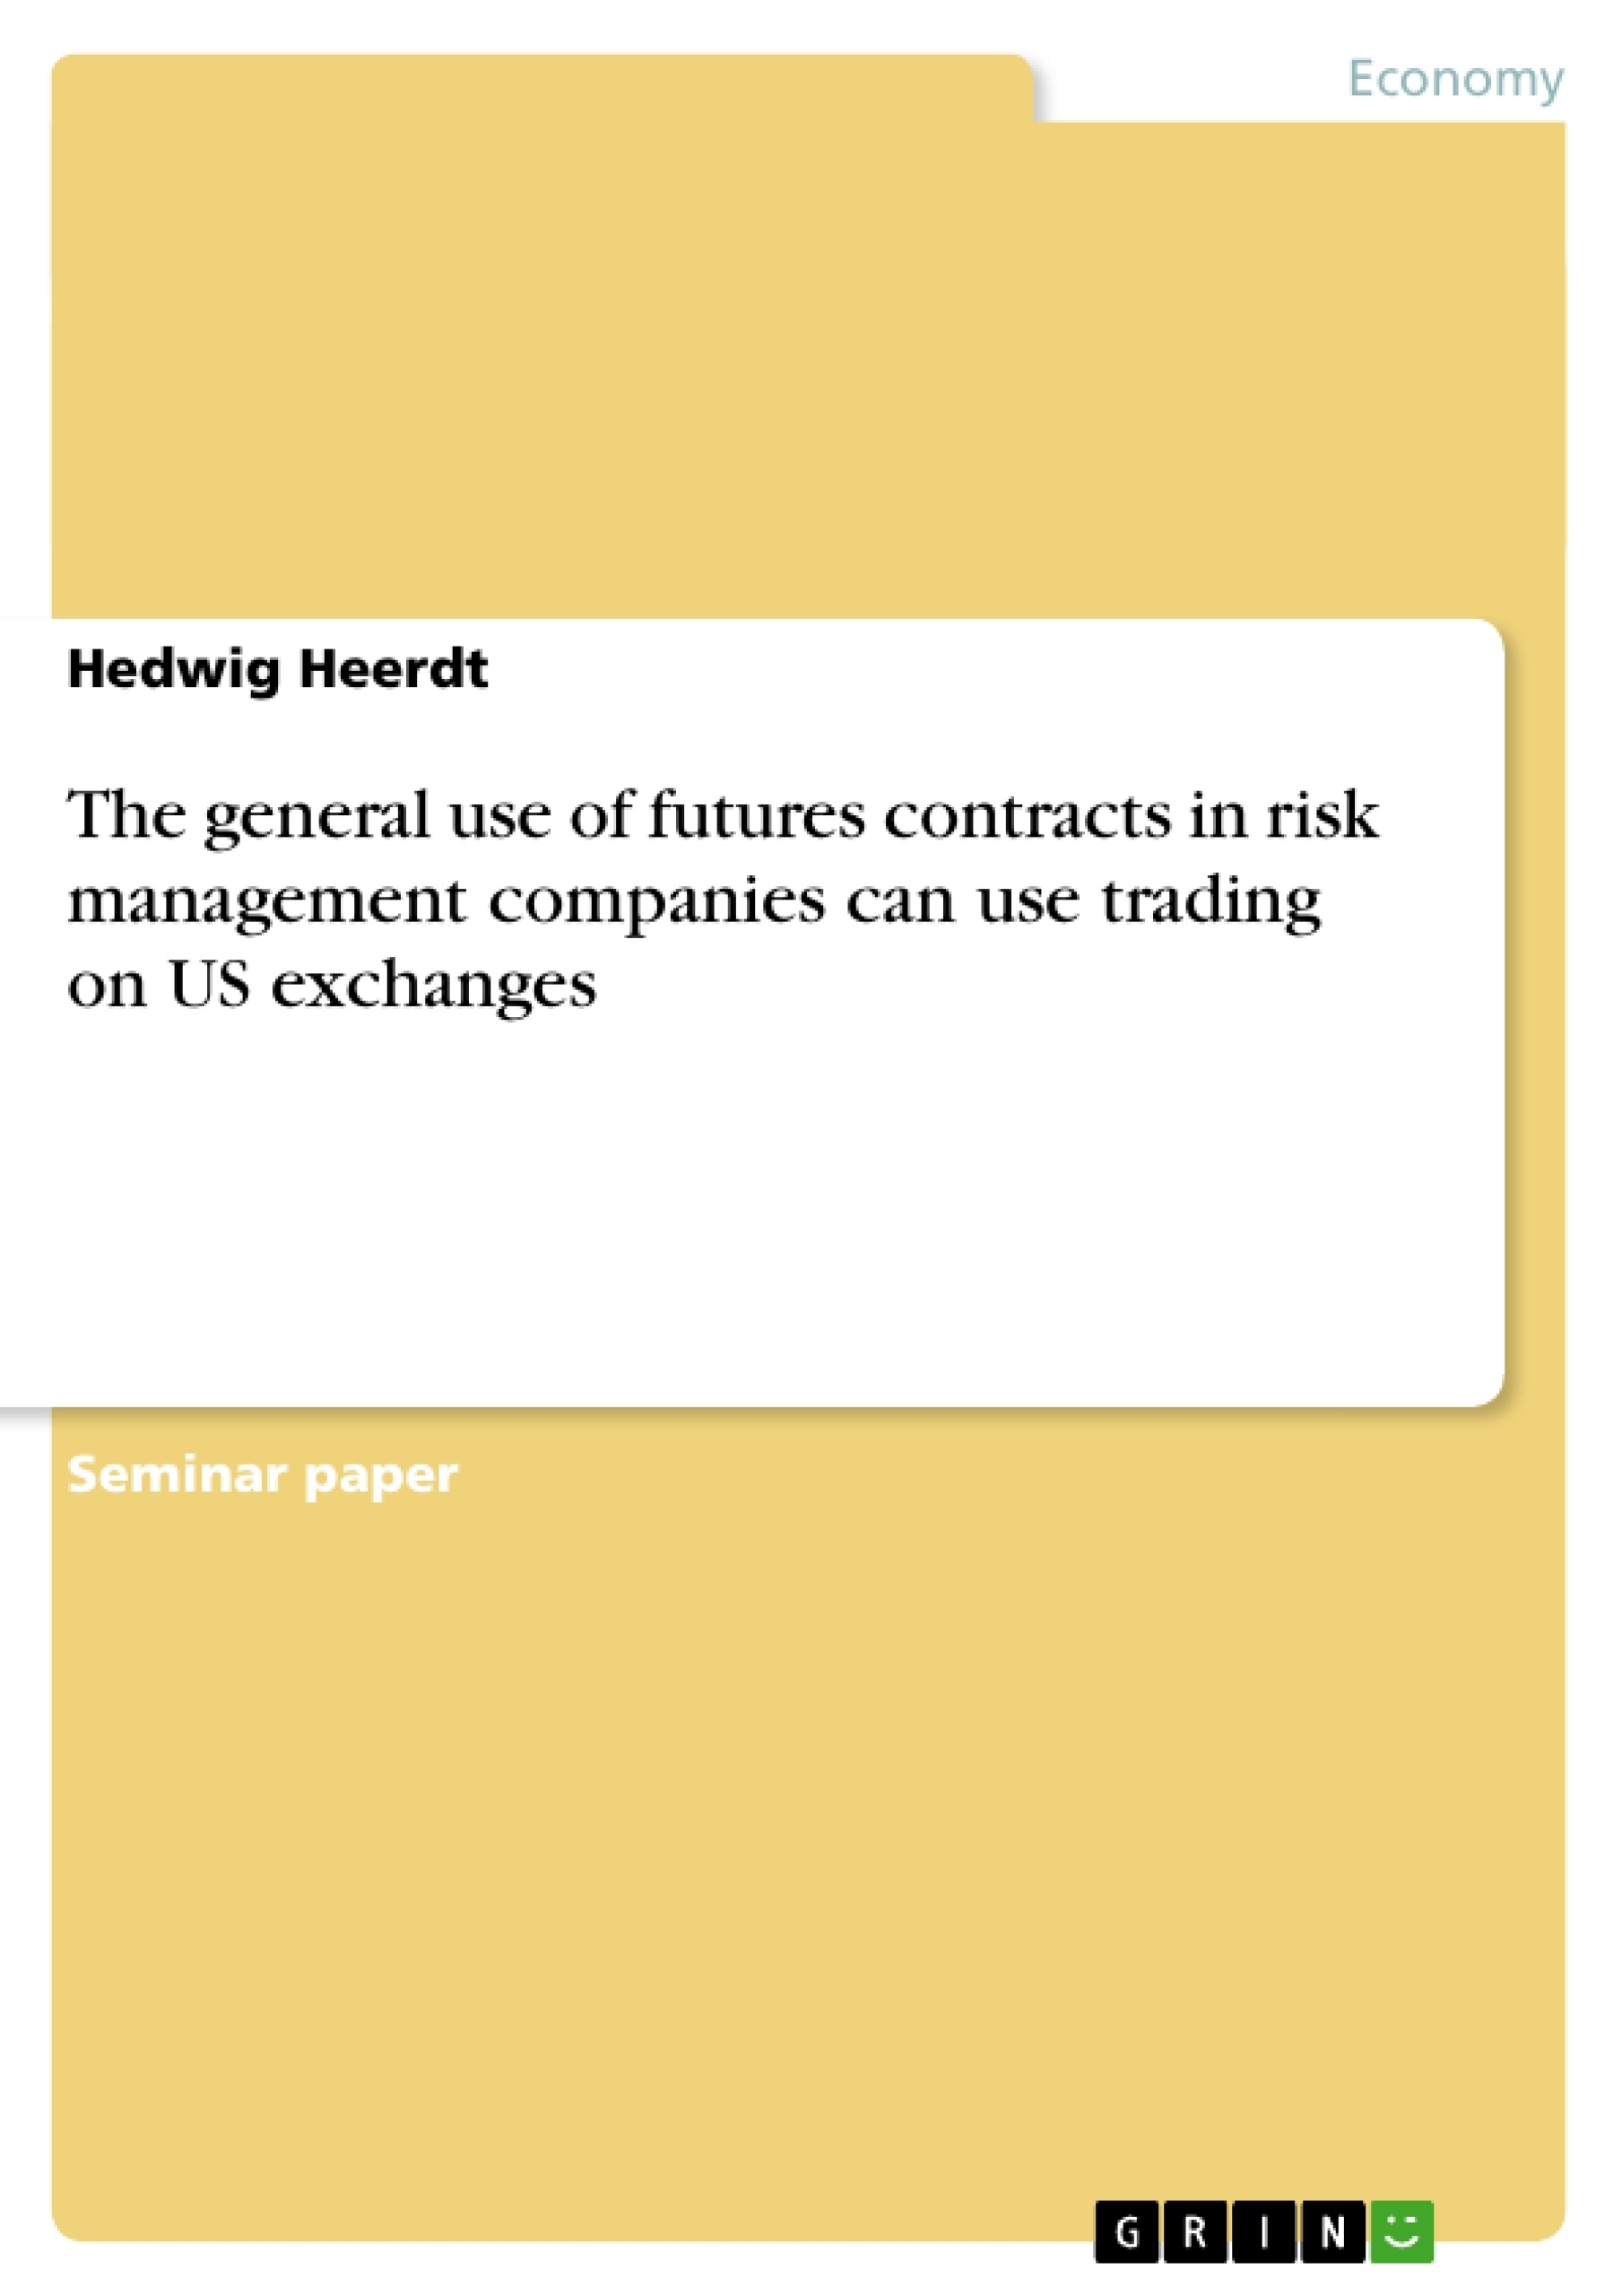 Title: The general use of futures contracts in risk management companies can use trading on US exchanges